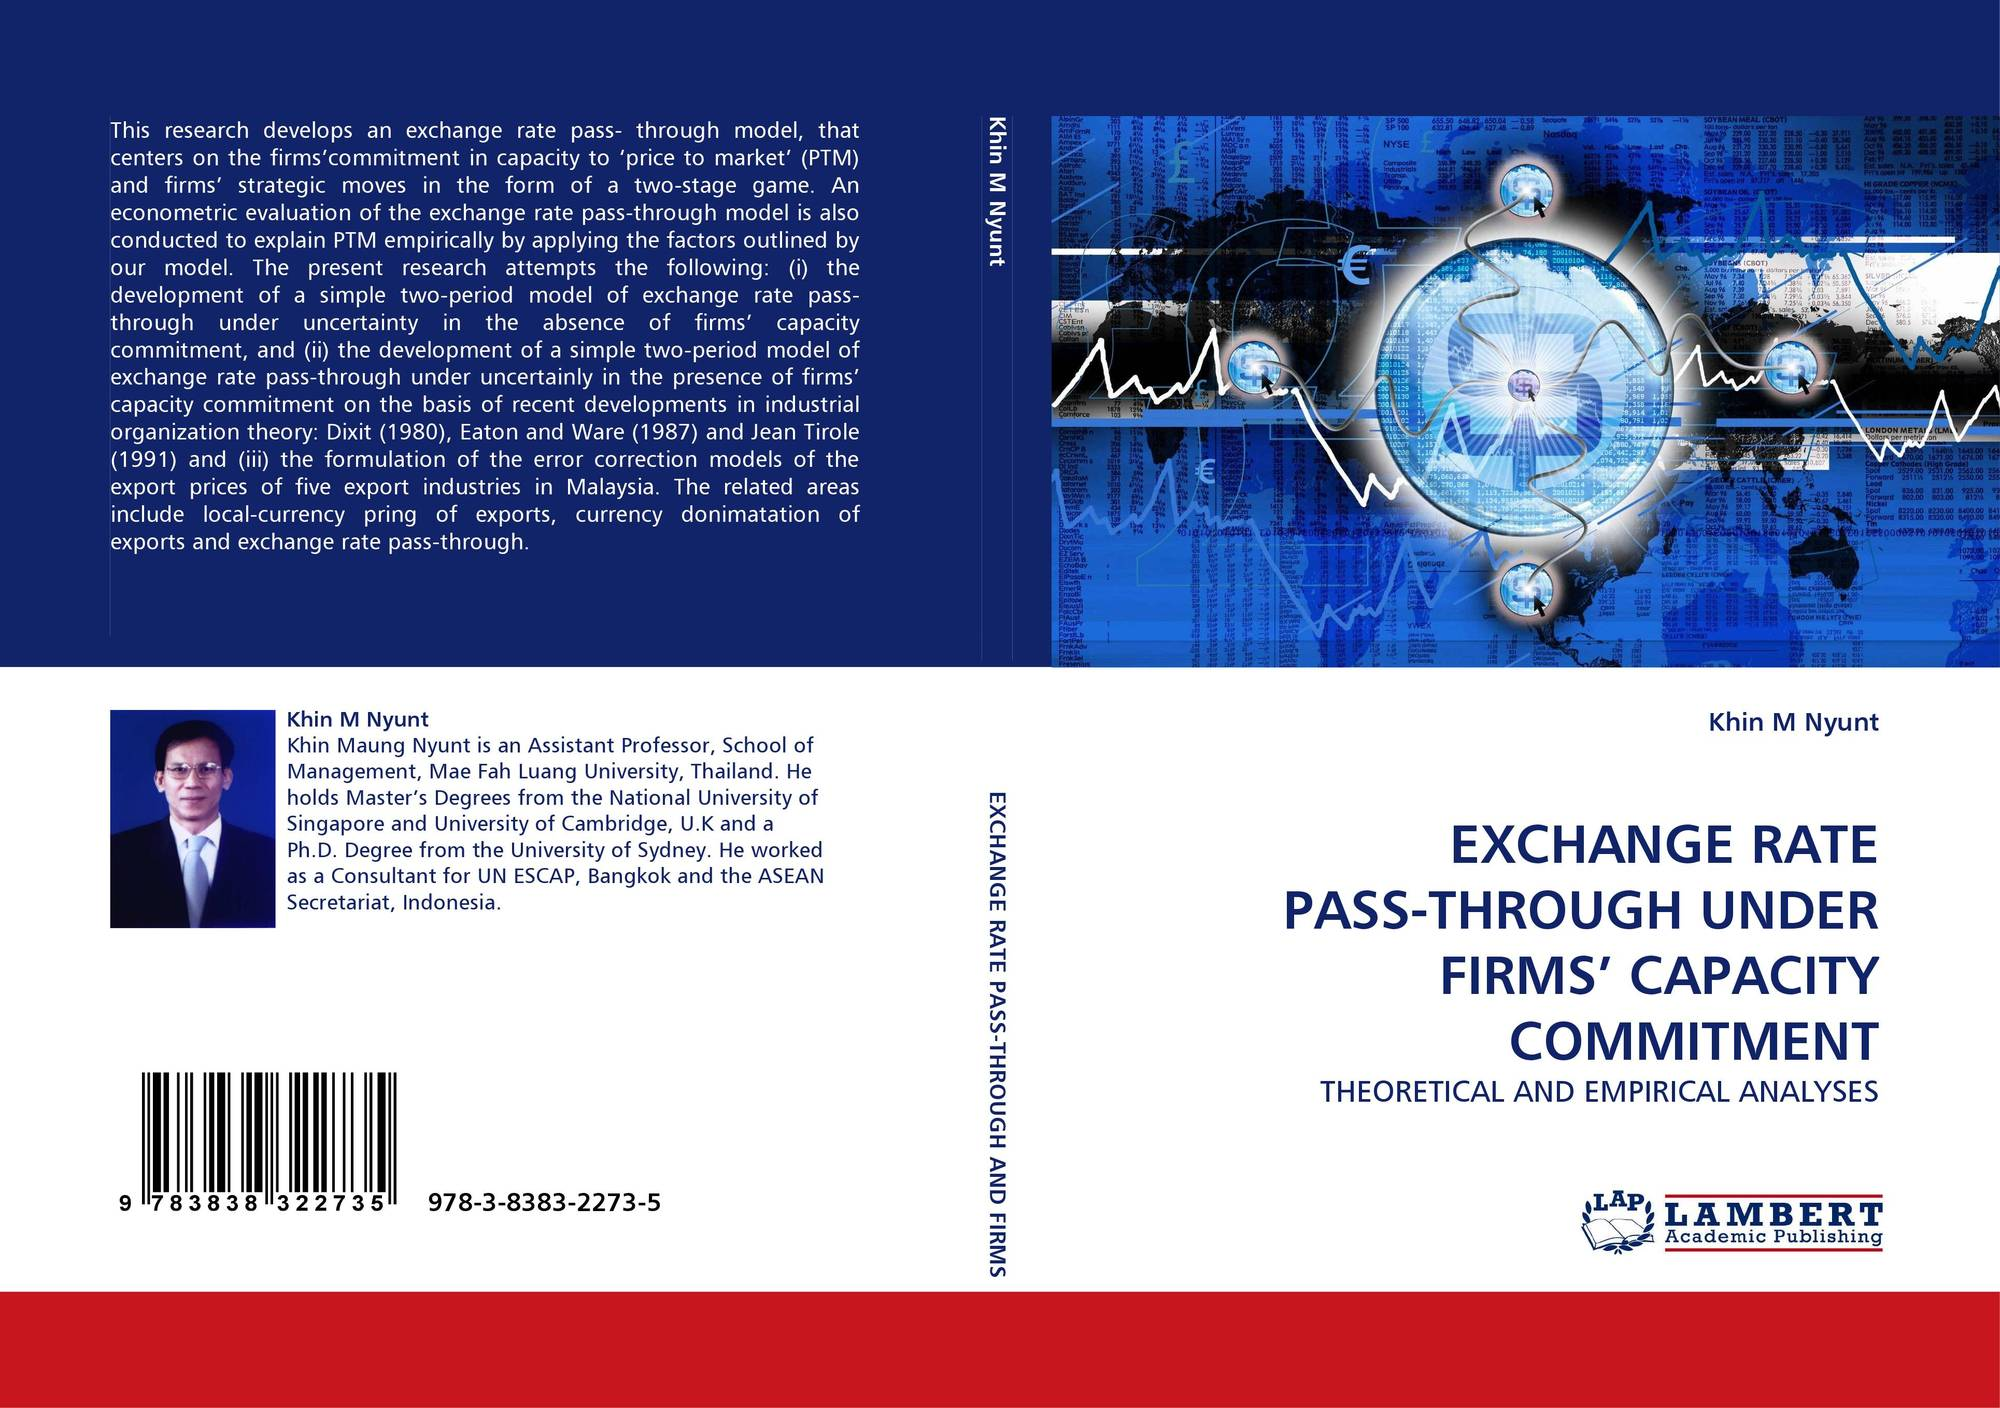 thesis on exchange rate pass through Asymmetric and non-linear exchange rate pass-through: an empirical analysis for six different countries master thesis erasmus university rotterdam.